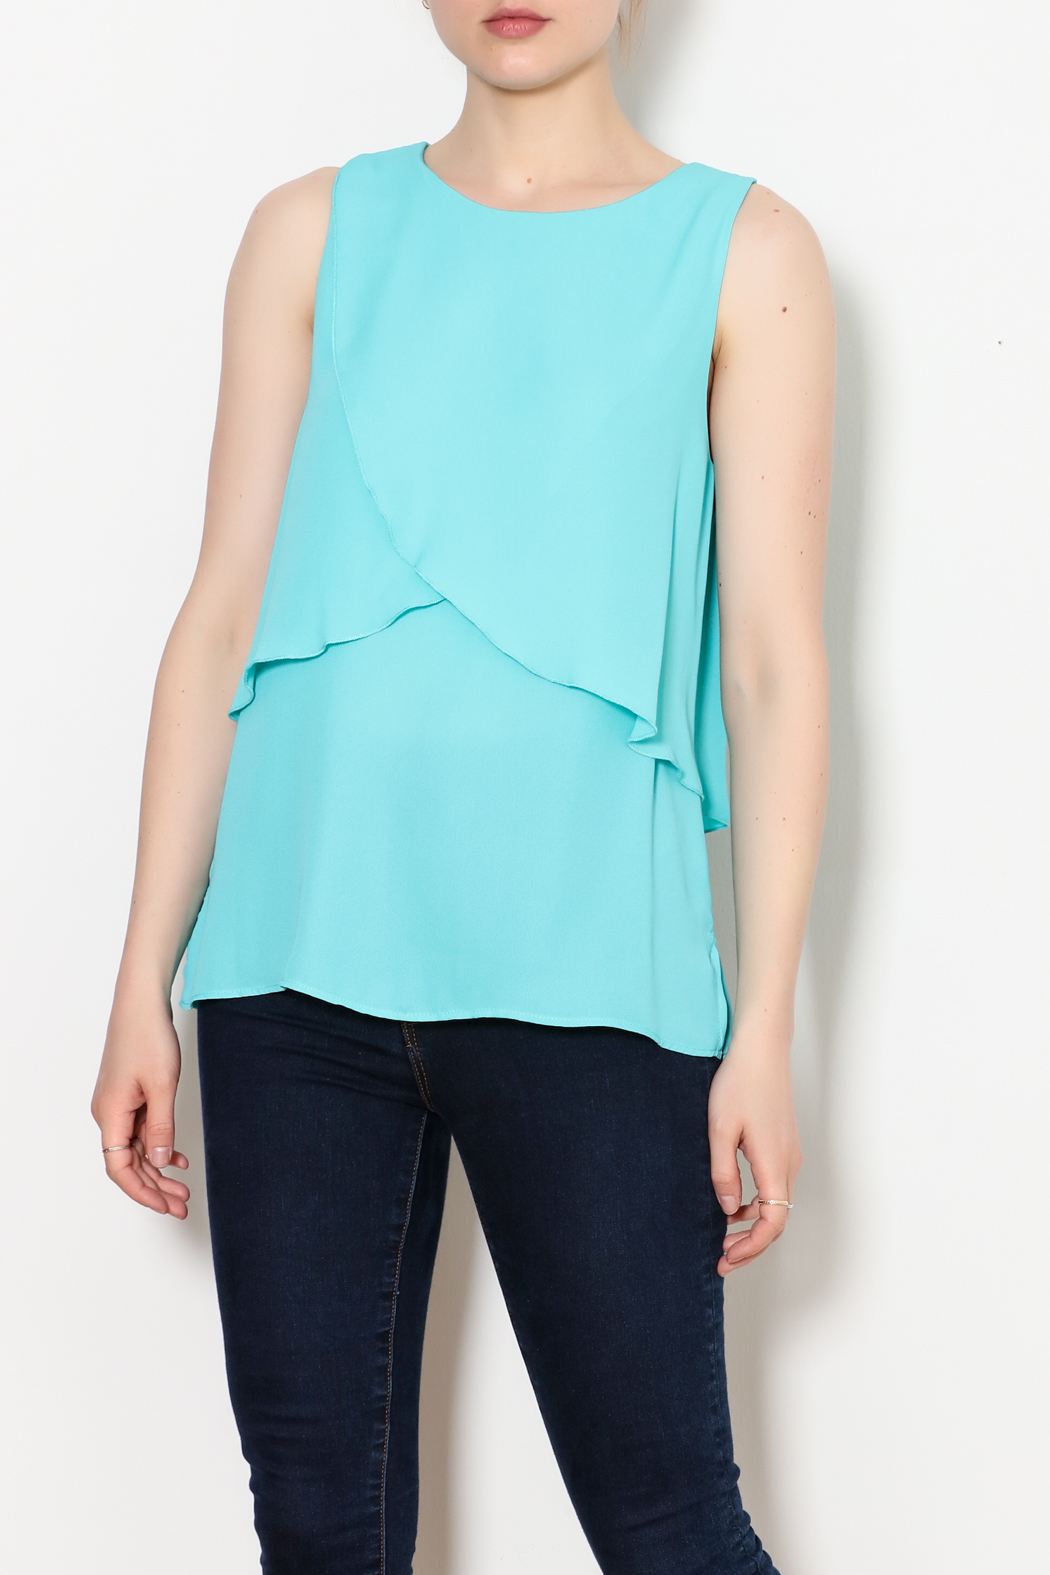 Kay Celine Charlotte Layered Top - Front Cropped Image